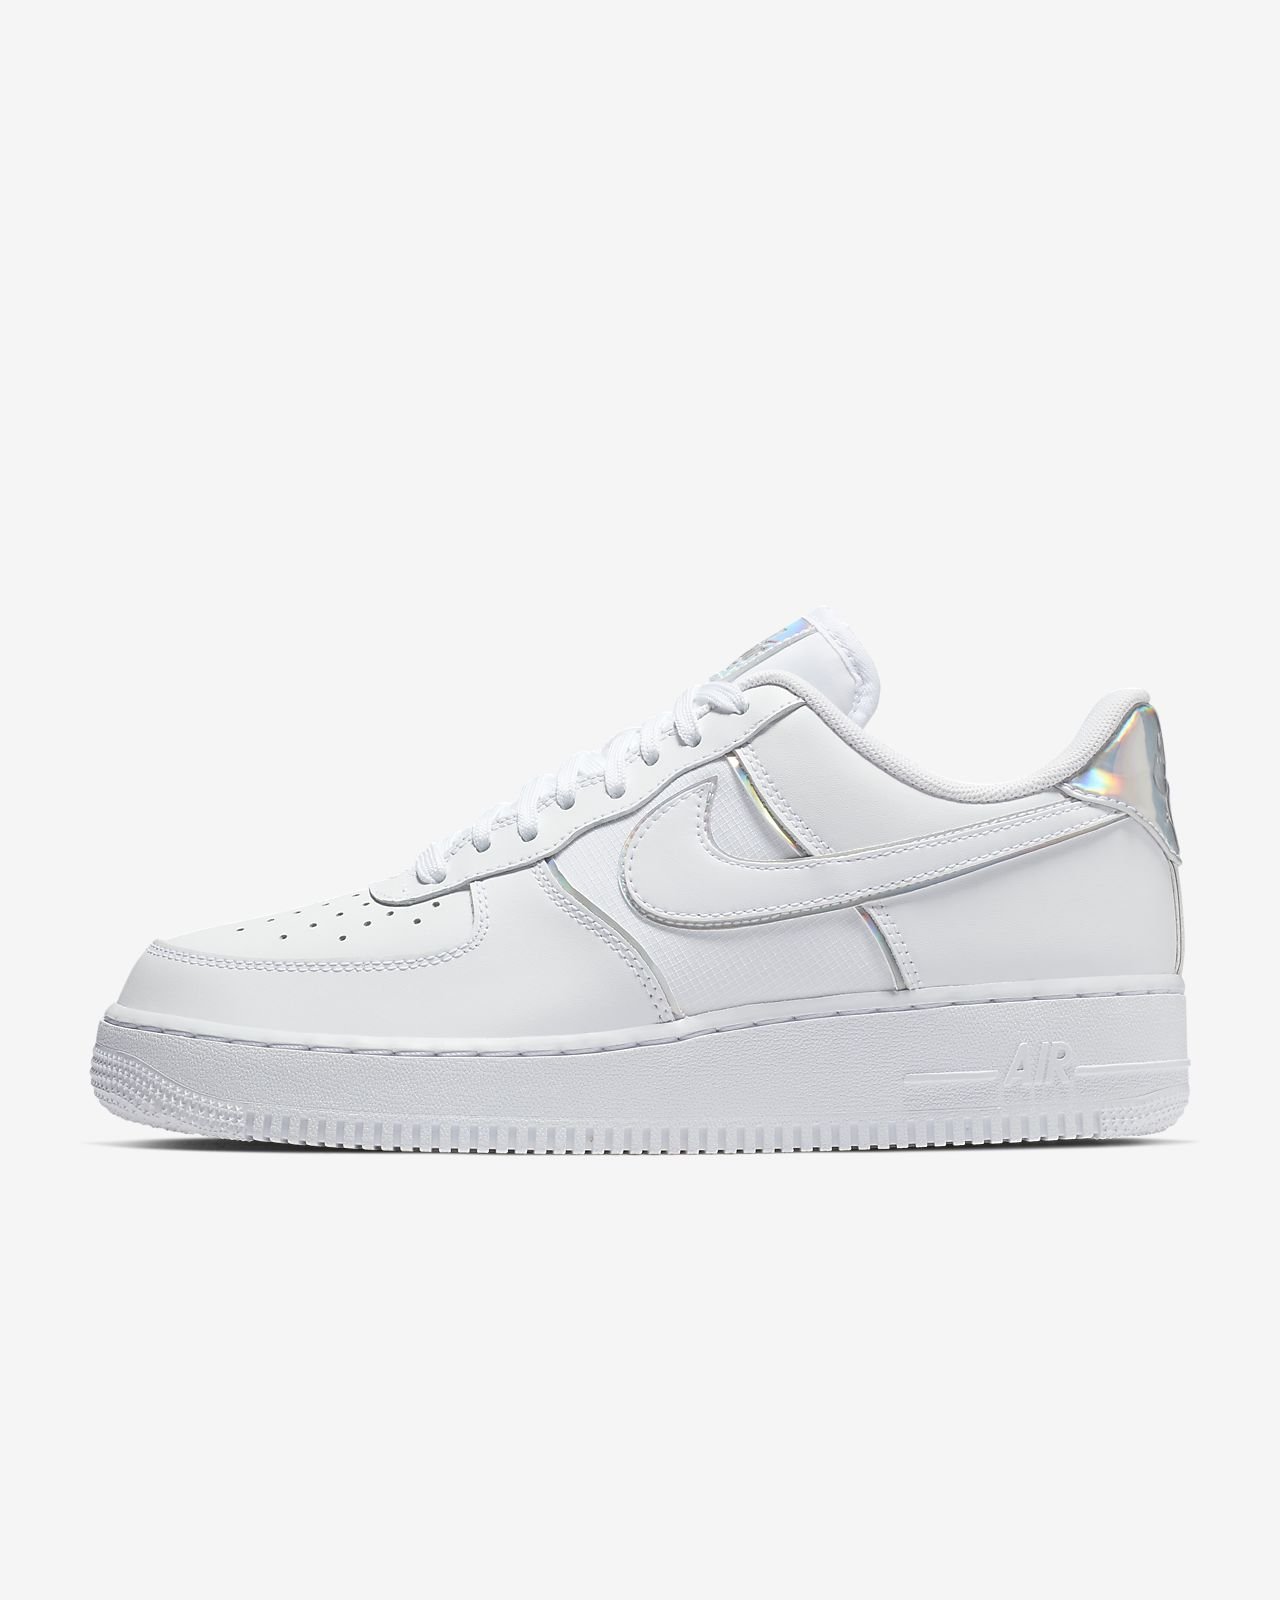 innovative design 6acf5 ef341 ... Nike Air Force 1  07 LV8 4 Men s Shoe